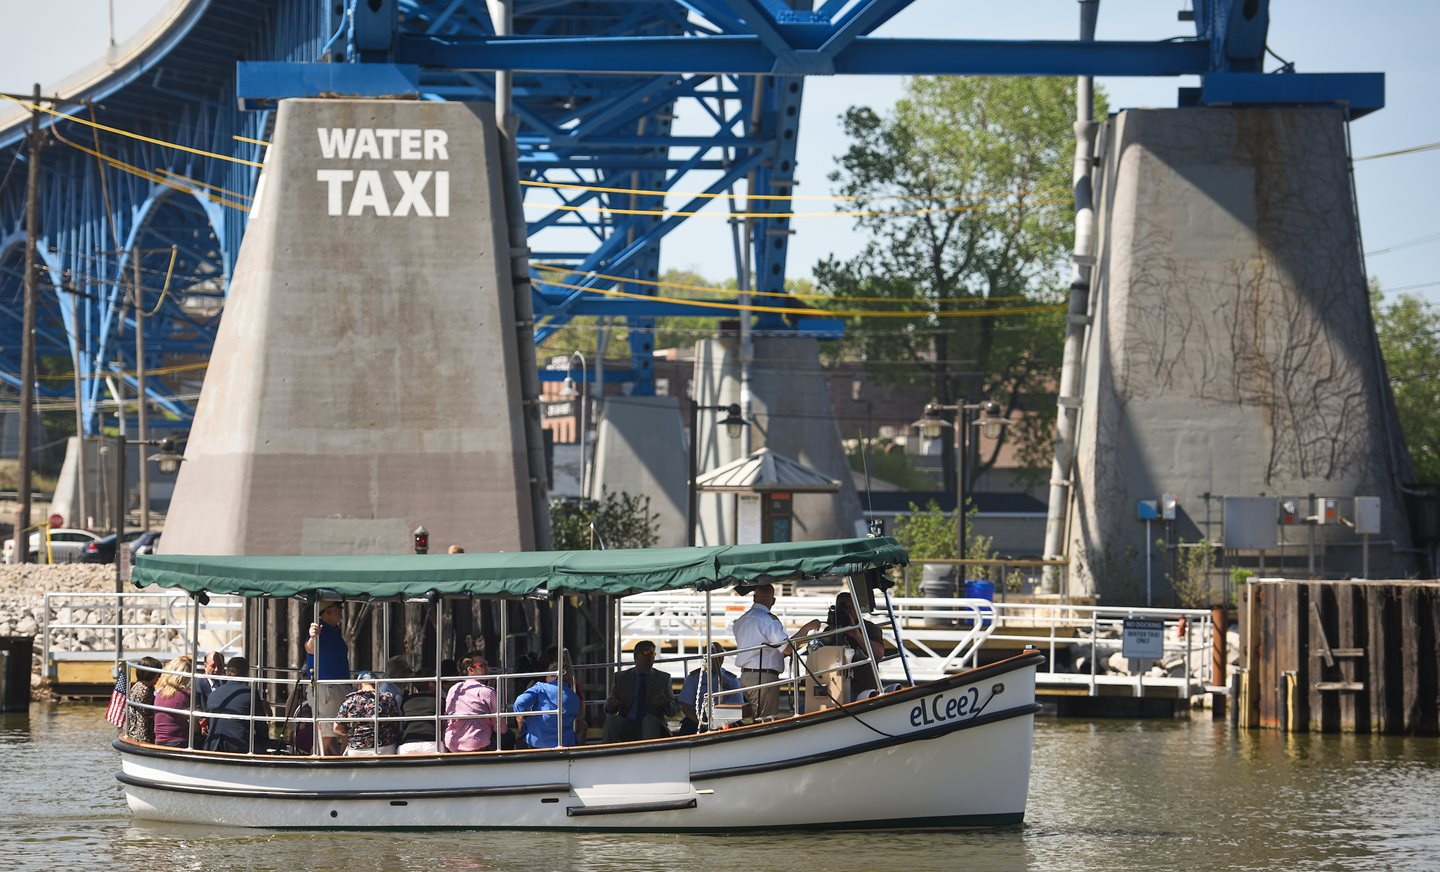 Celebrate the Cuyahoga River with Free Cleveland Metroparks Water Taxi Service Courtesy Of ArcelorMittal